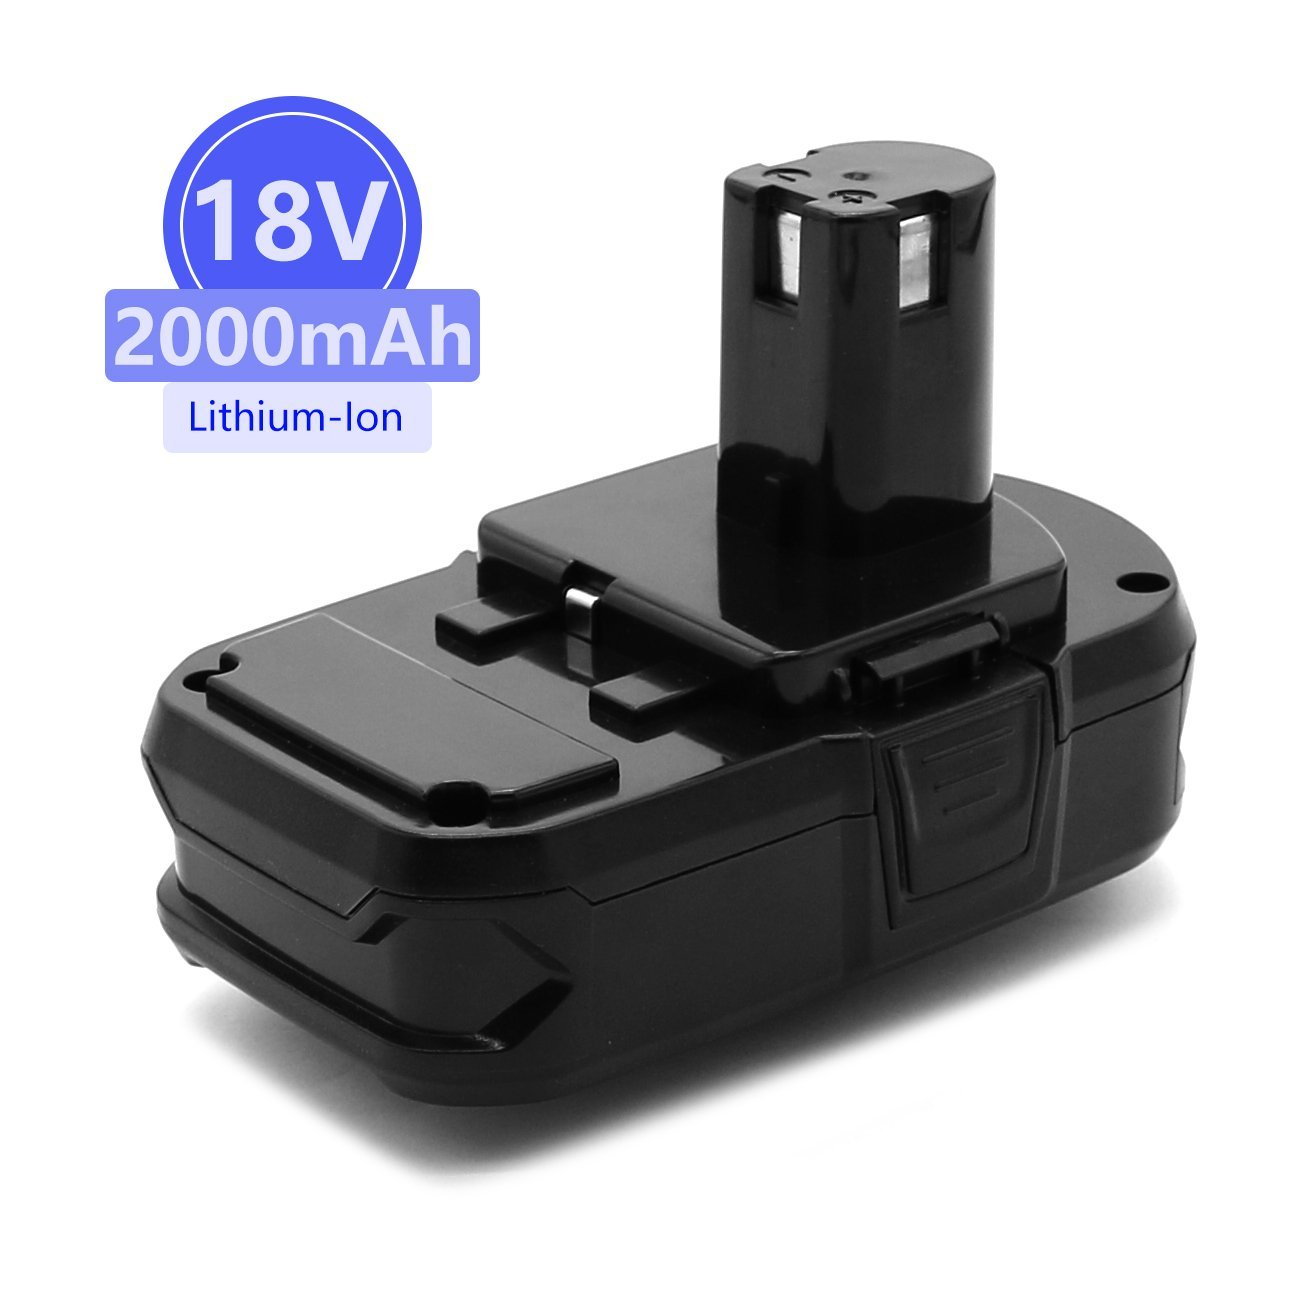 Power-Ing 18V 2000mAh Lithium Ion Replacement Battery for Ryobi ONE Plus P102 P108 P105 P104 P107 P507 P103 P122 P109 RB18L40 ONE+ 18 Volt 2.0AH Cordless Drill Power Tools batteries Pack Parts